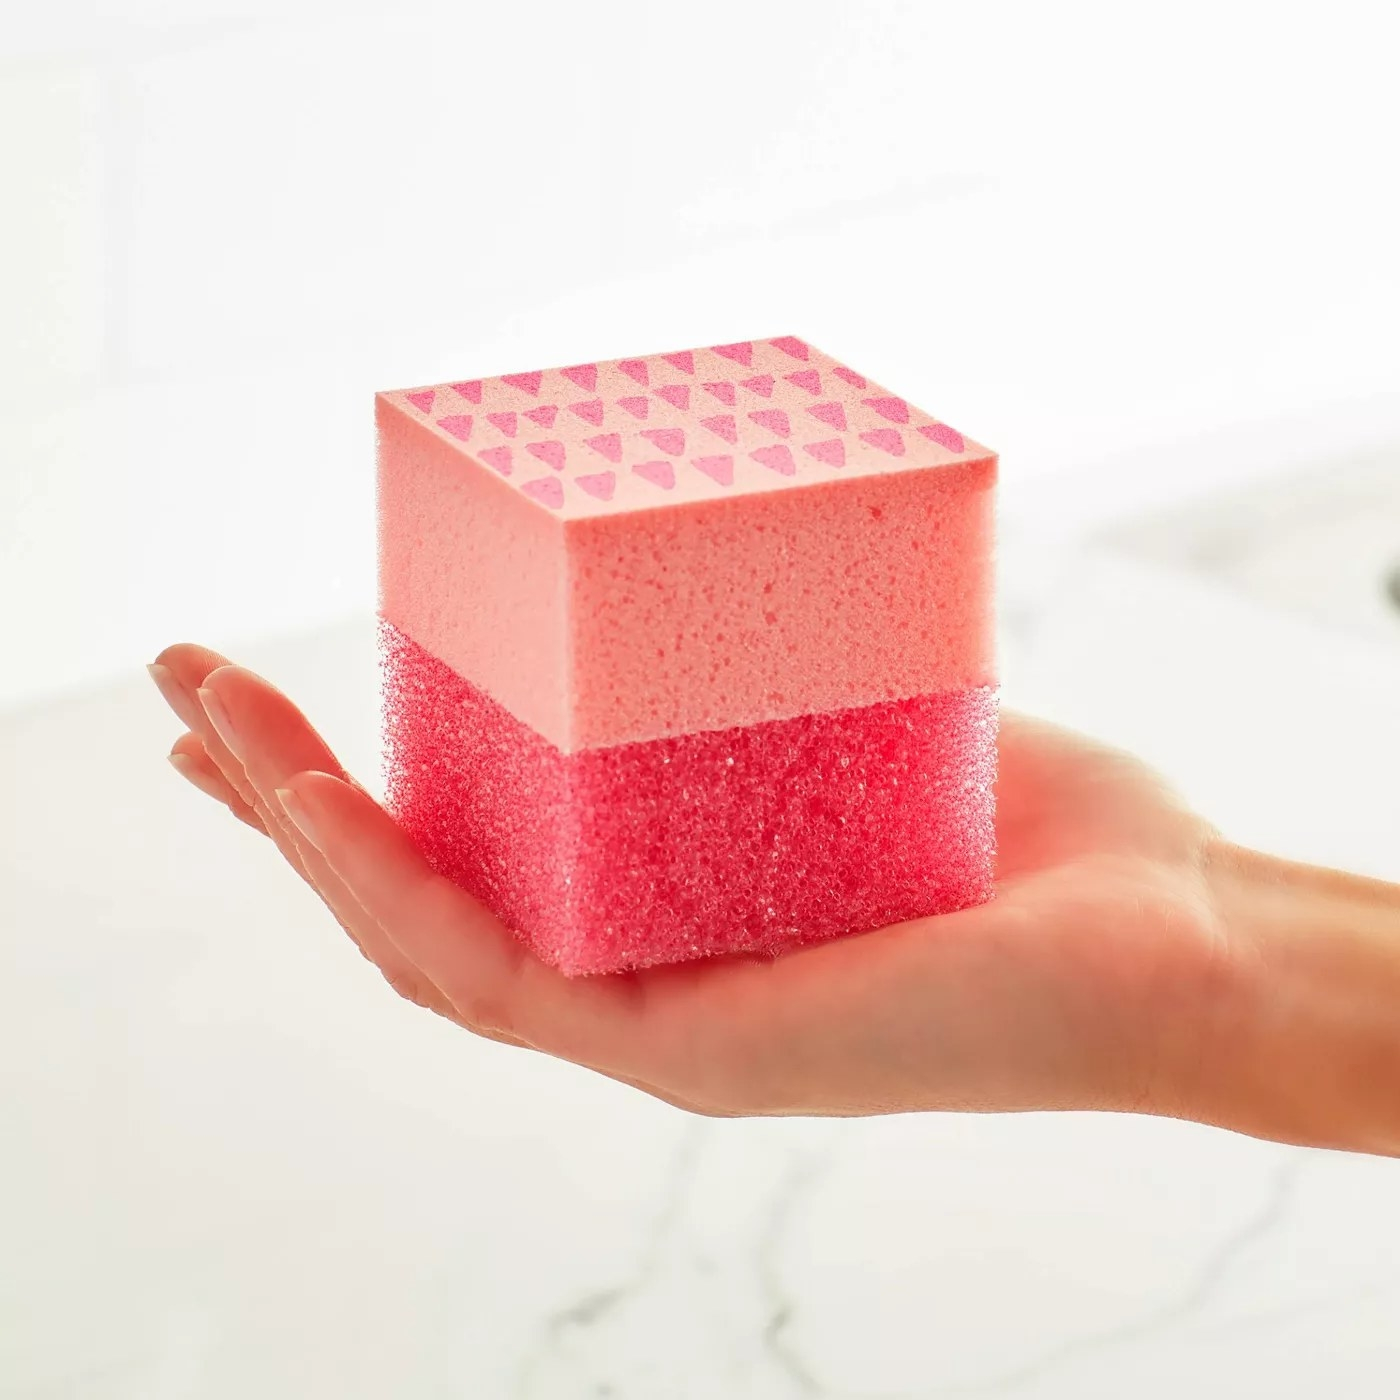 A model holding a pink, cube-shaped sponge with a soft side and a scrubby side